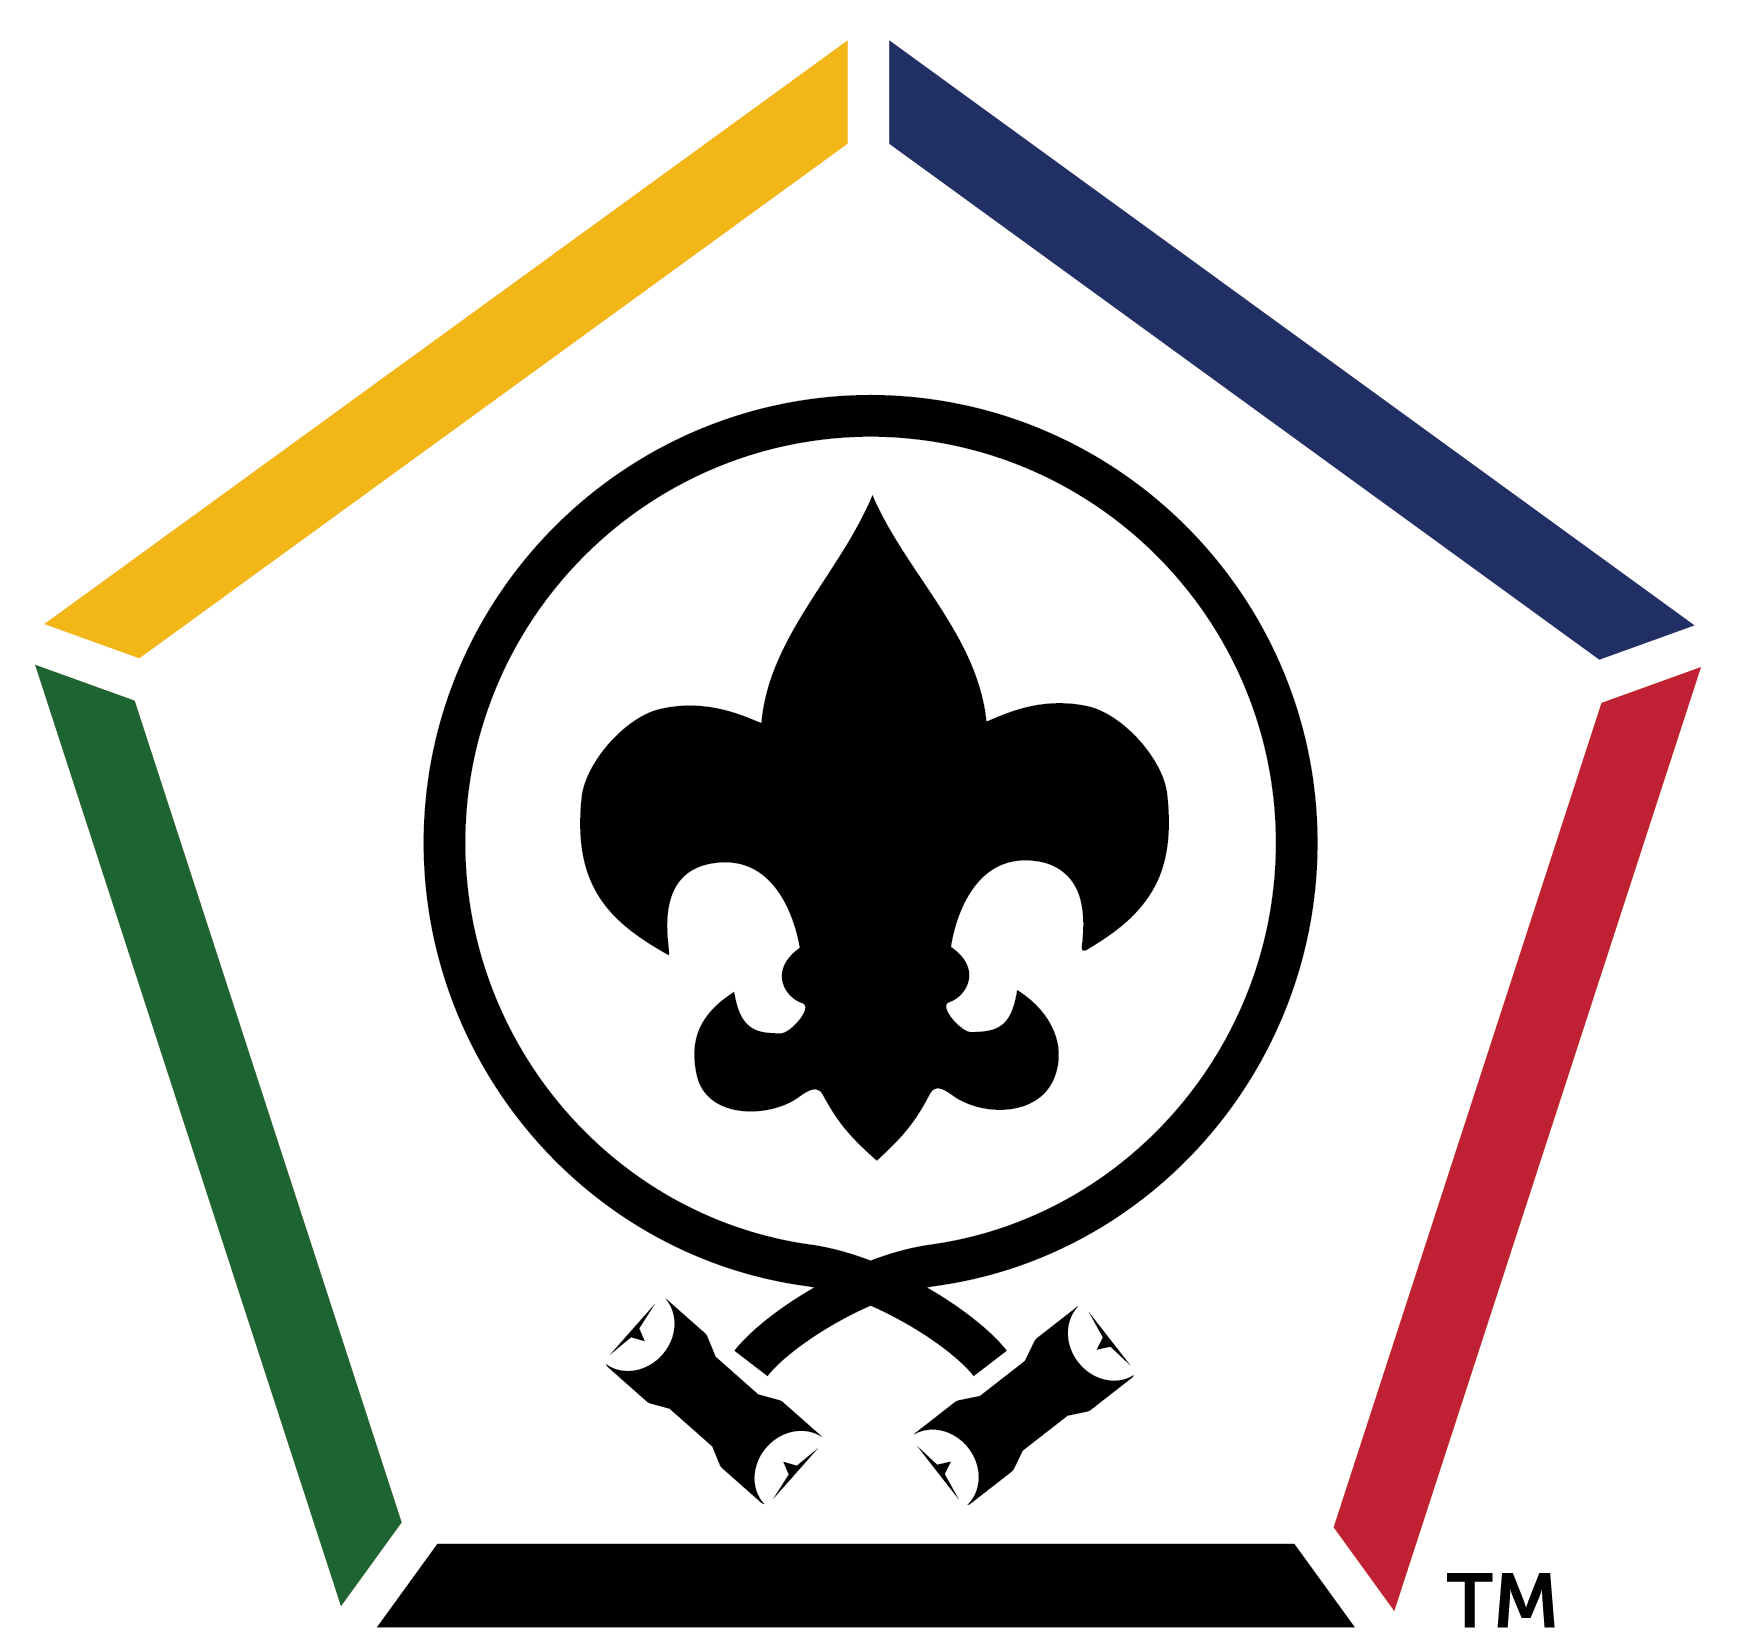 WoodBadge - Wood Badge is an advanced, national leadership course open only to Scouting volunteers and professionals.The Mississippi Valley Council is hosting a 2019 course.The Abraham Lincoln Council be hosting a course August 21-23, 2020 @ Camp Illinek and September 17-19, 2020 @ Camp Bunn.